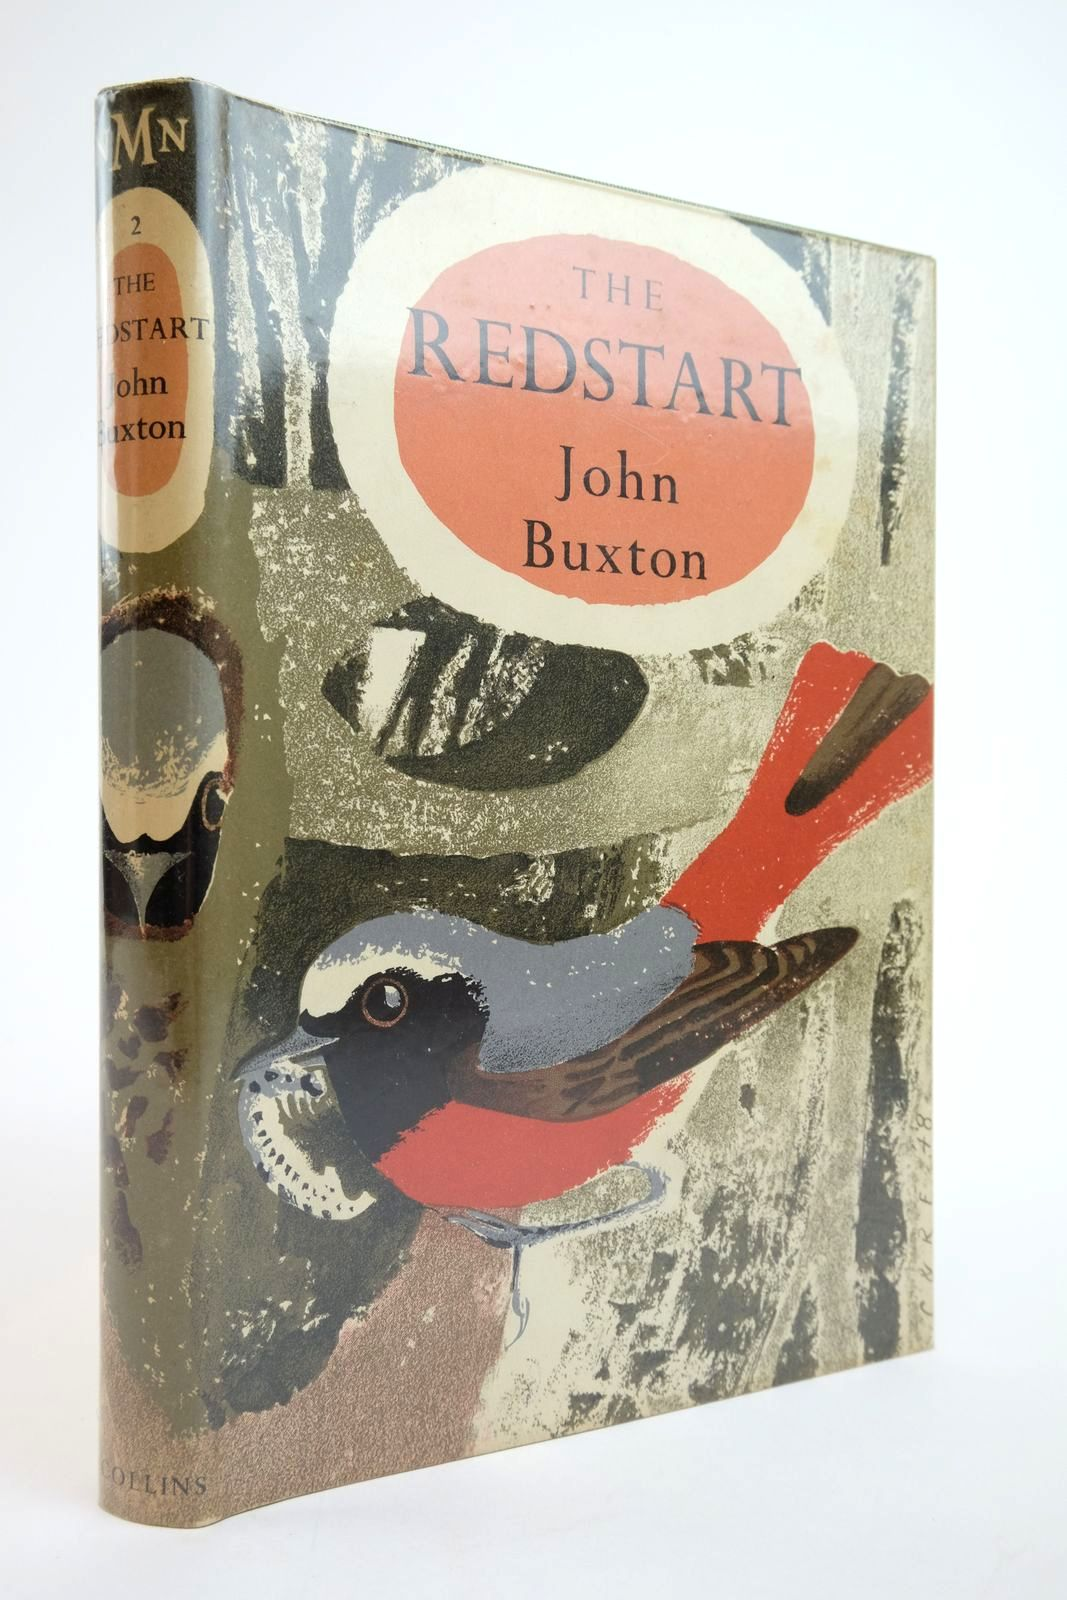 Photo of THE REDSTART (NMN 2) written by Buxton, John published by Collins (STOCK CODE: 2134983)  for sale by Stella & Rose's Books